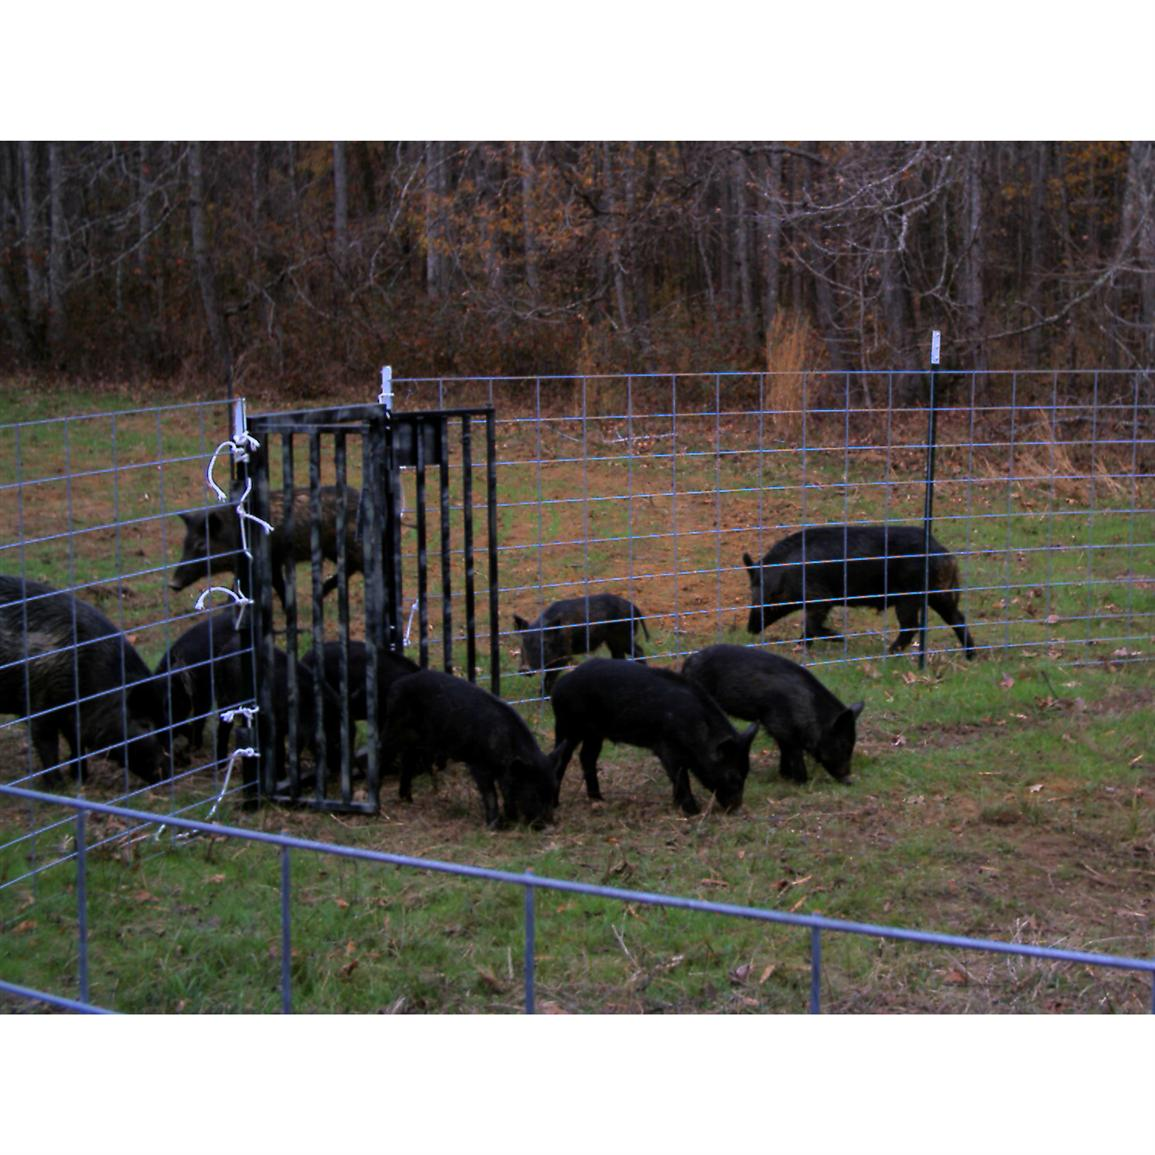 Trapped hogs lure more hogs